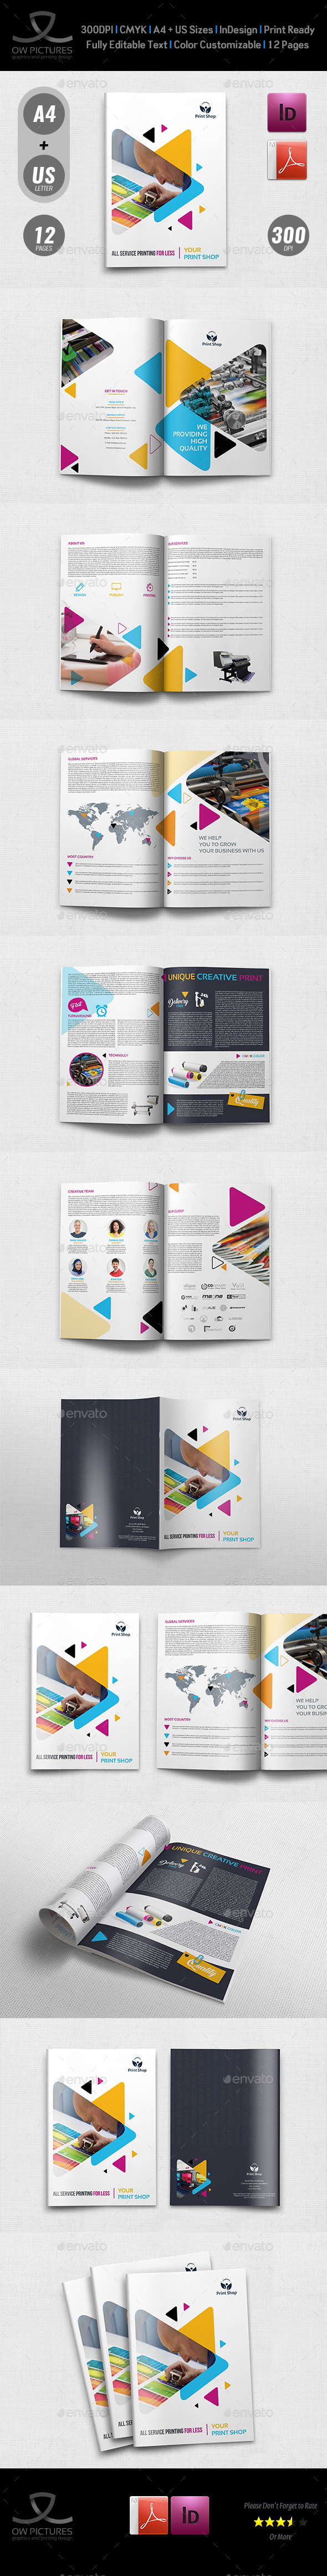 Print Shop Brochure Template - 12 Pages - Brochures Print Templates